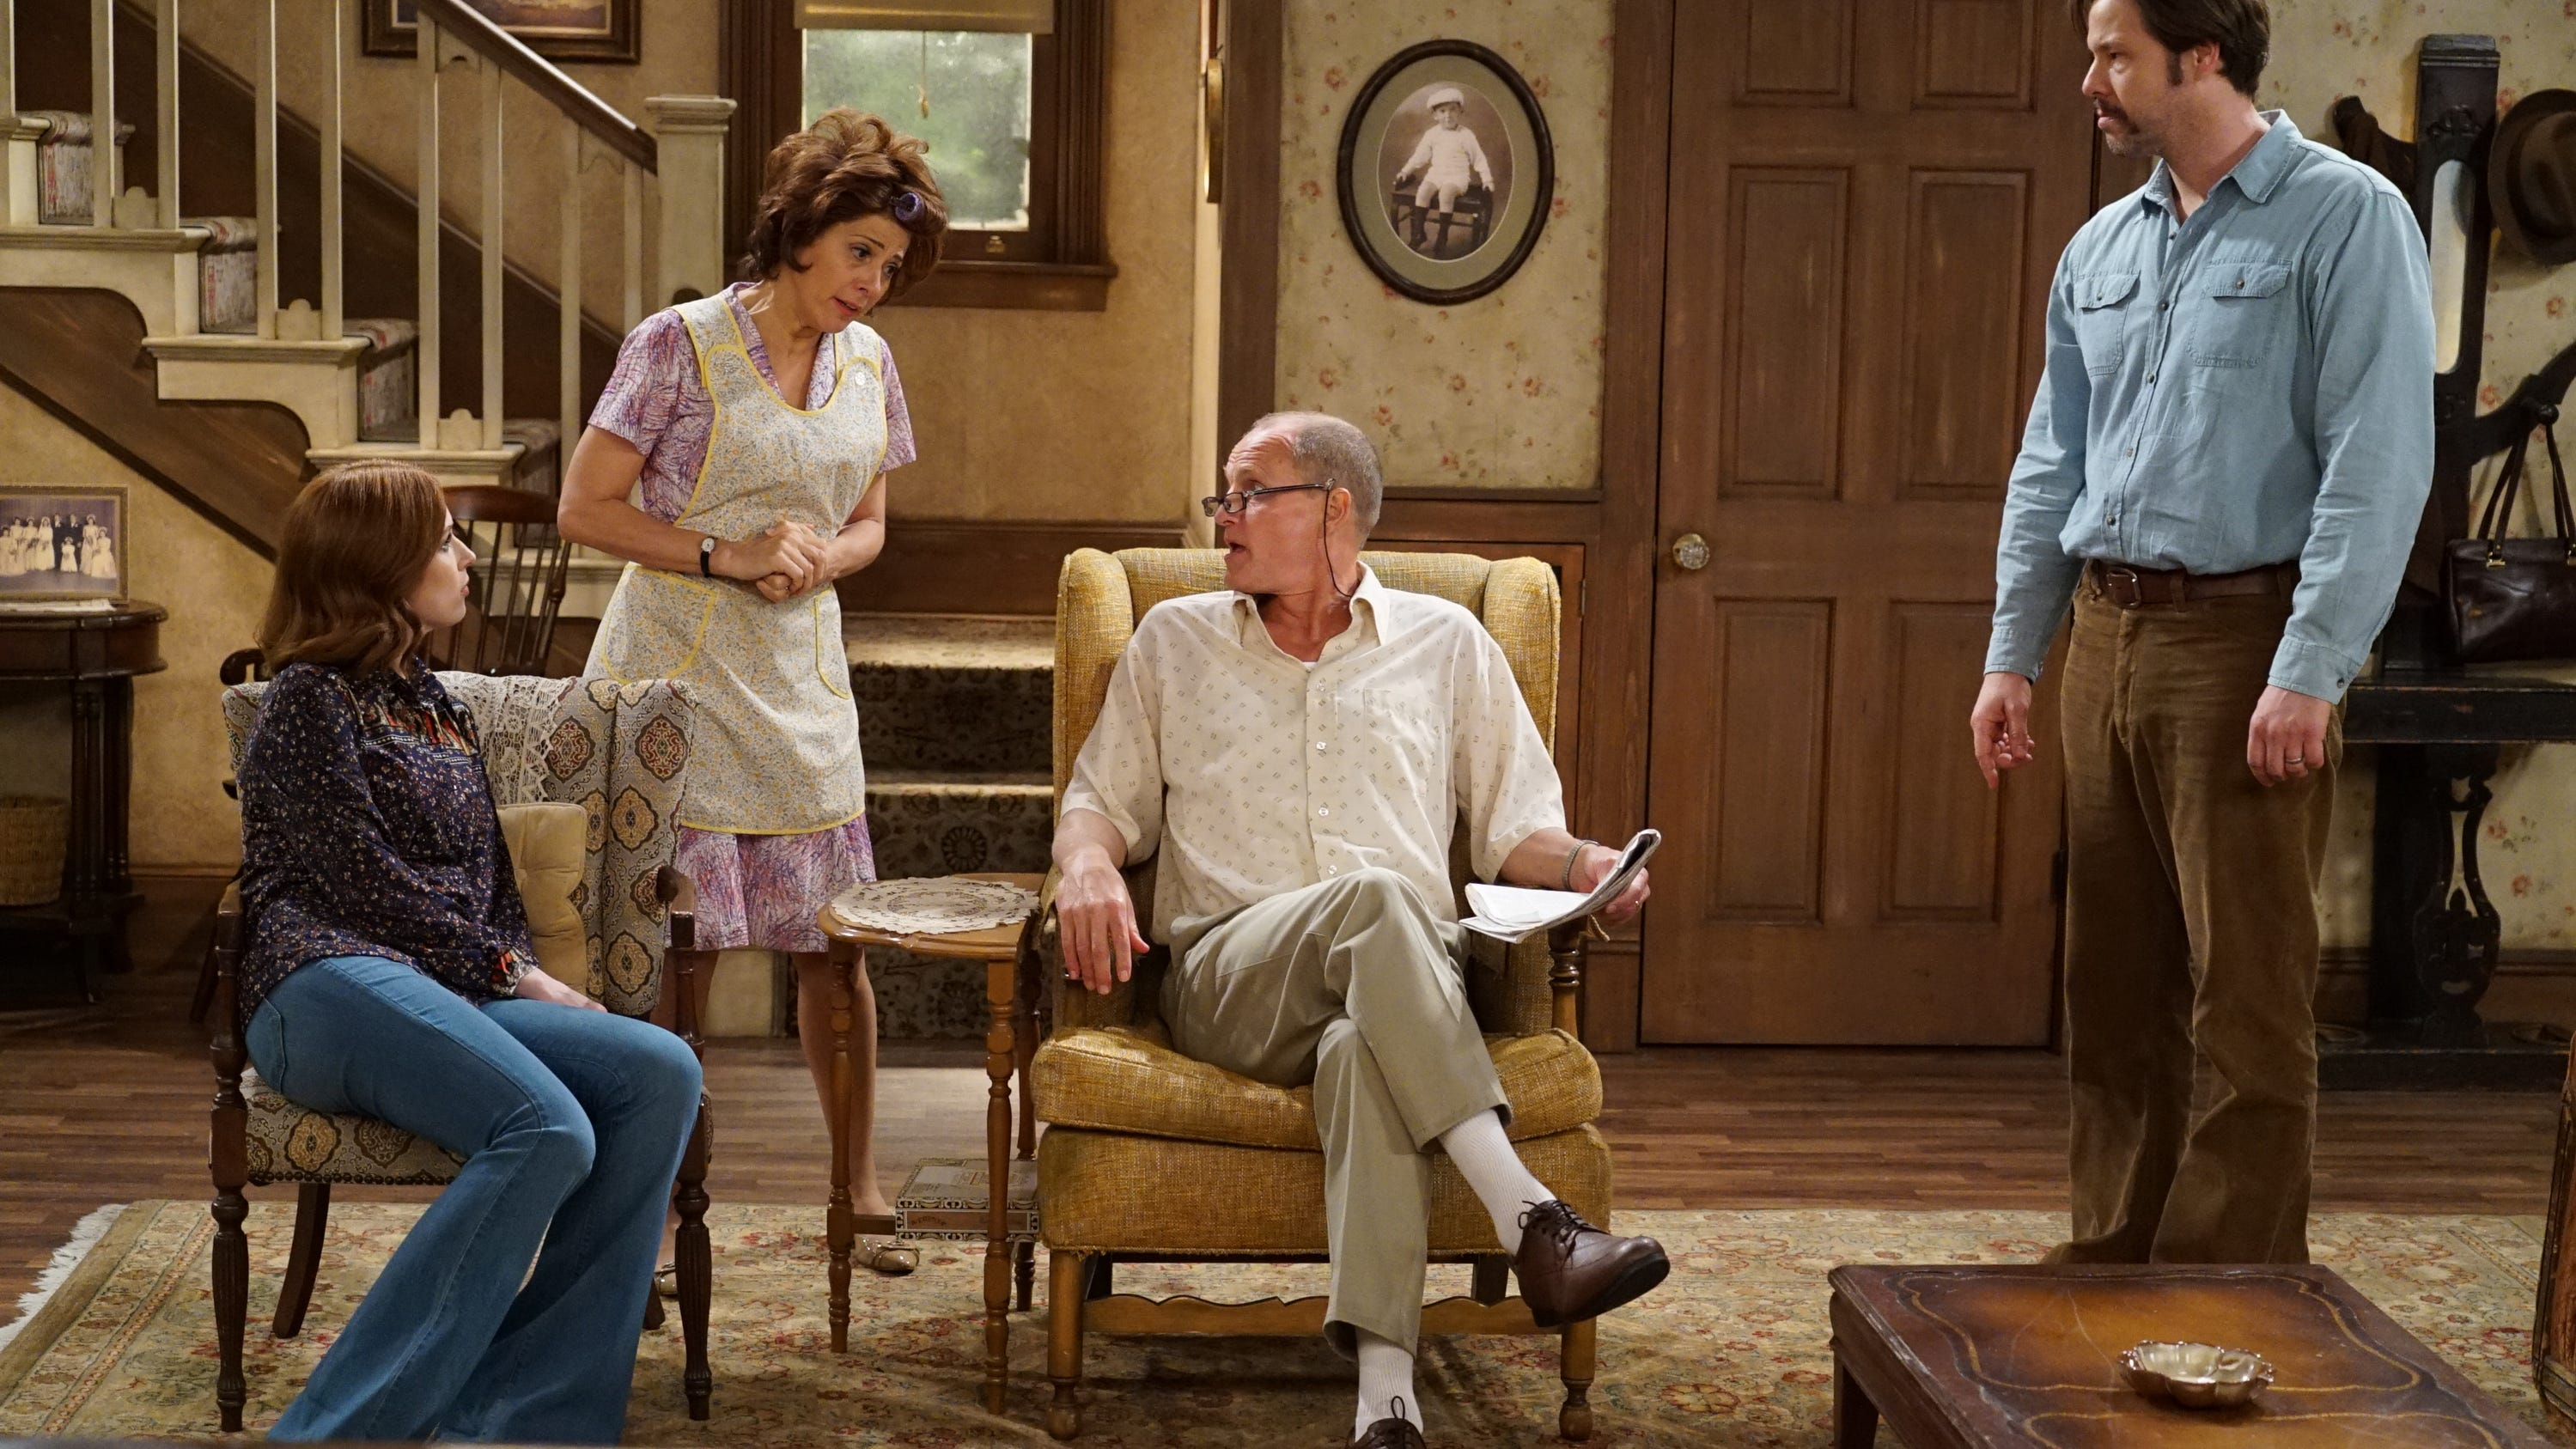 Kevin Bacon Woody Harrelson Marisa Tomei Star In Abc All In The Family See more of jimmy kimmel on facebook. kevin bacon woody harrelson marisa